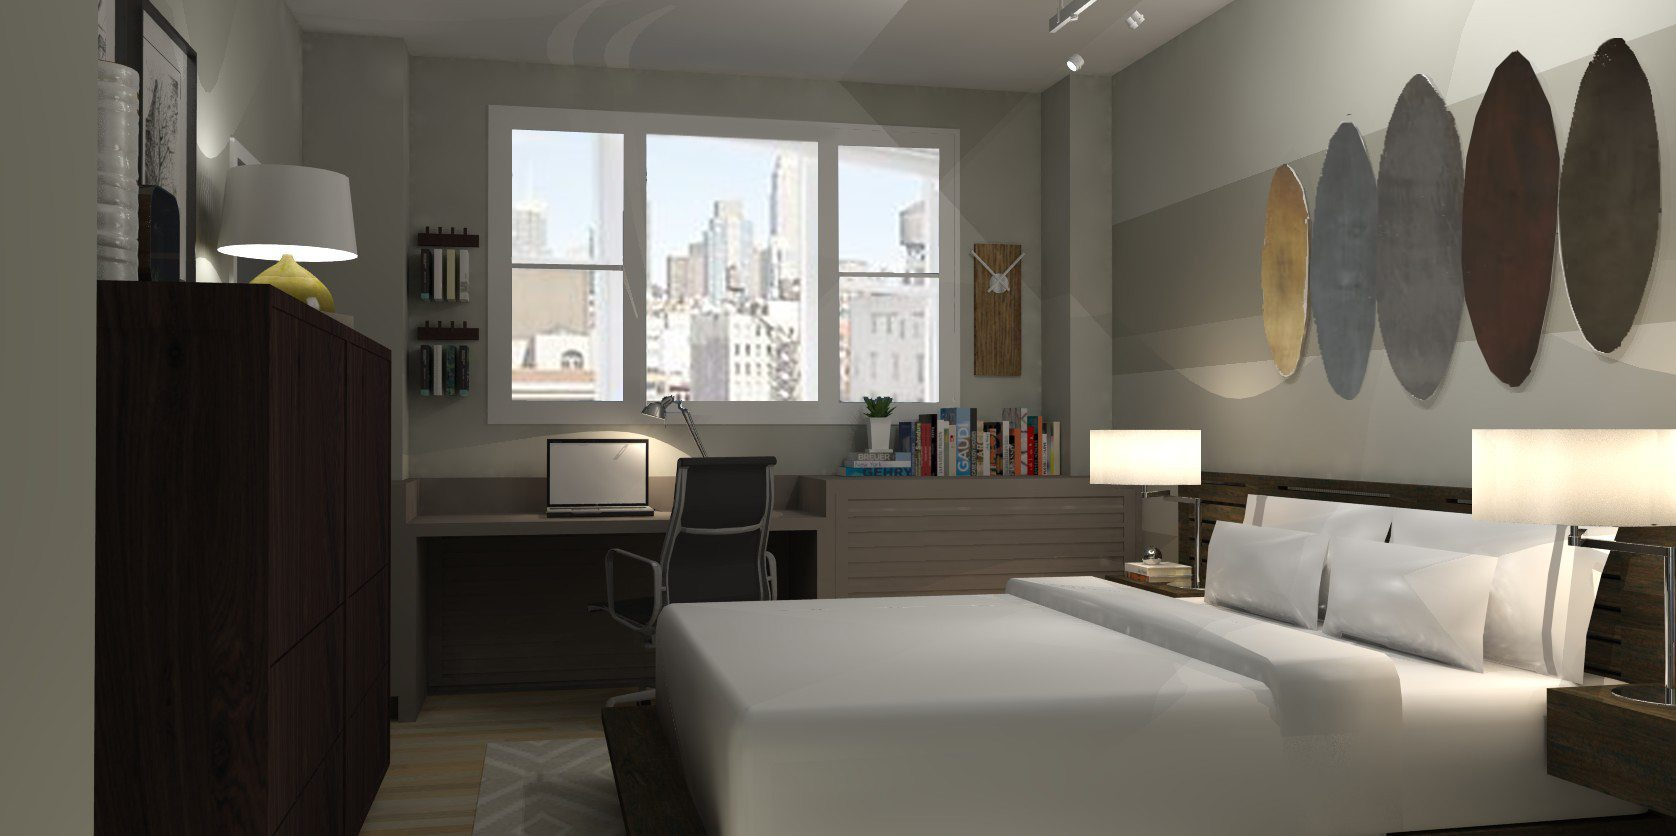 Bedroom Apartment Design